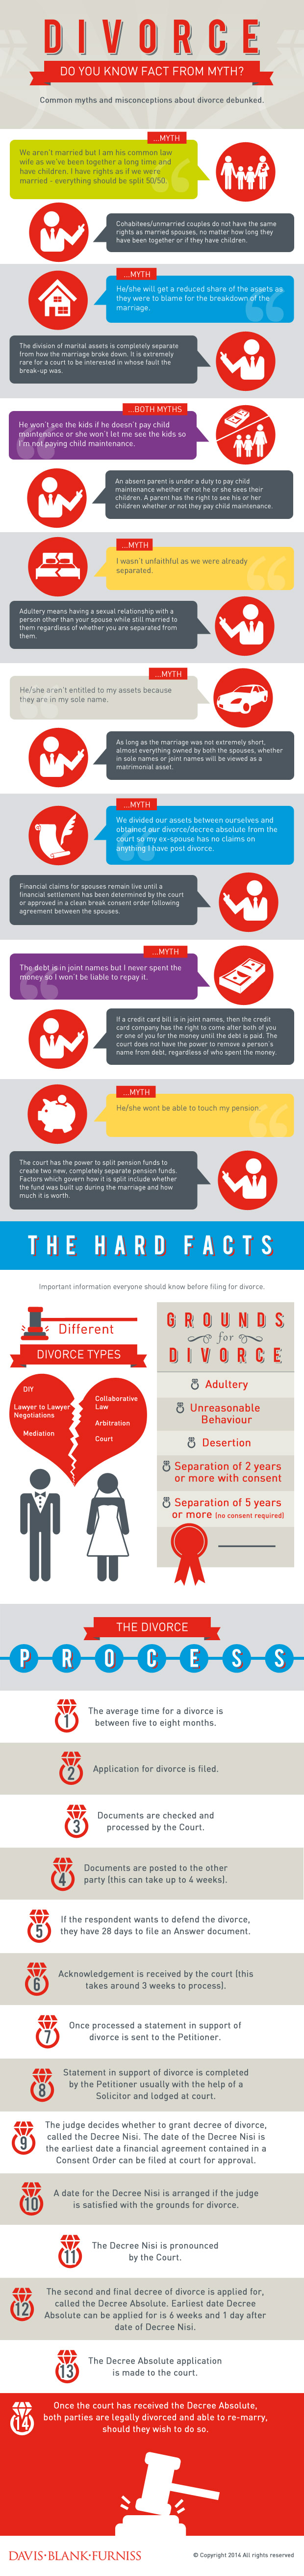 Common myths and misconceptions about divorce debunked